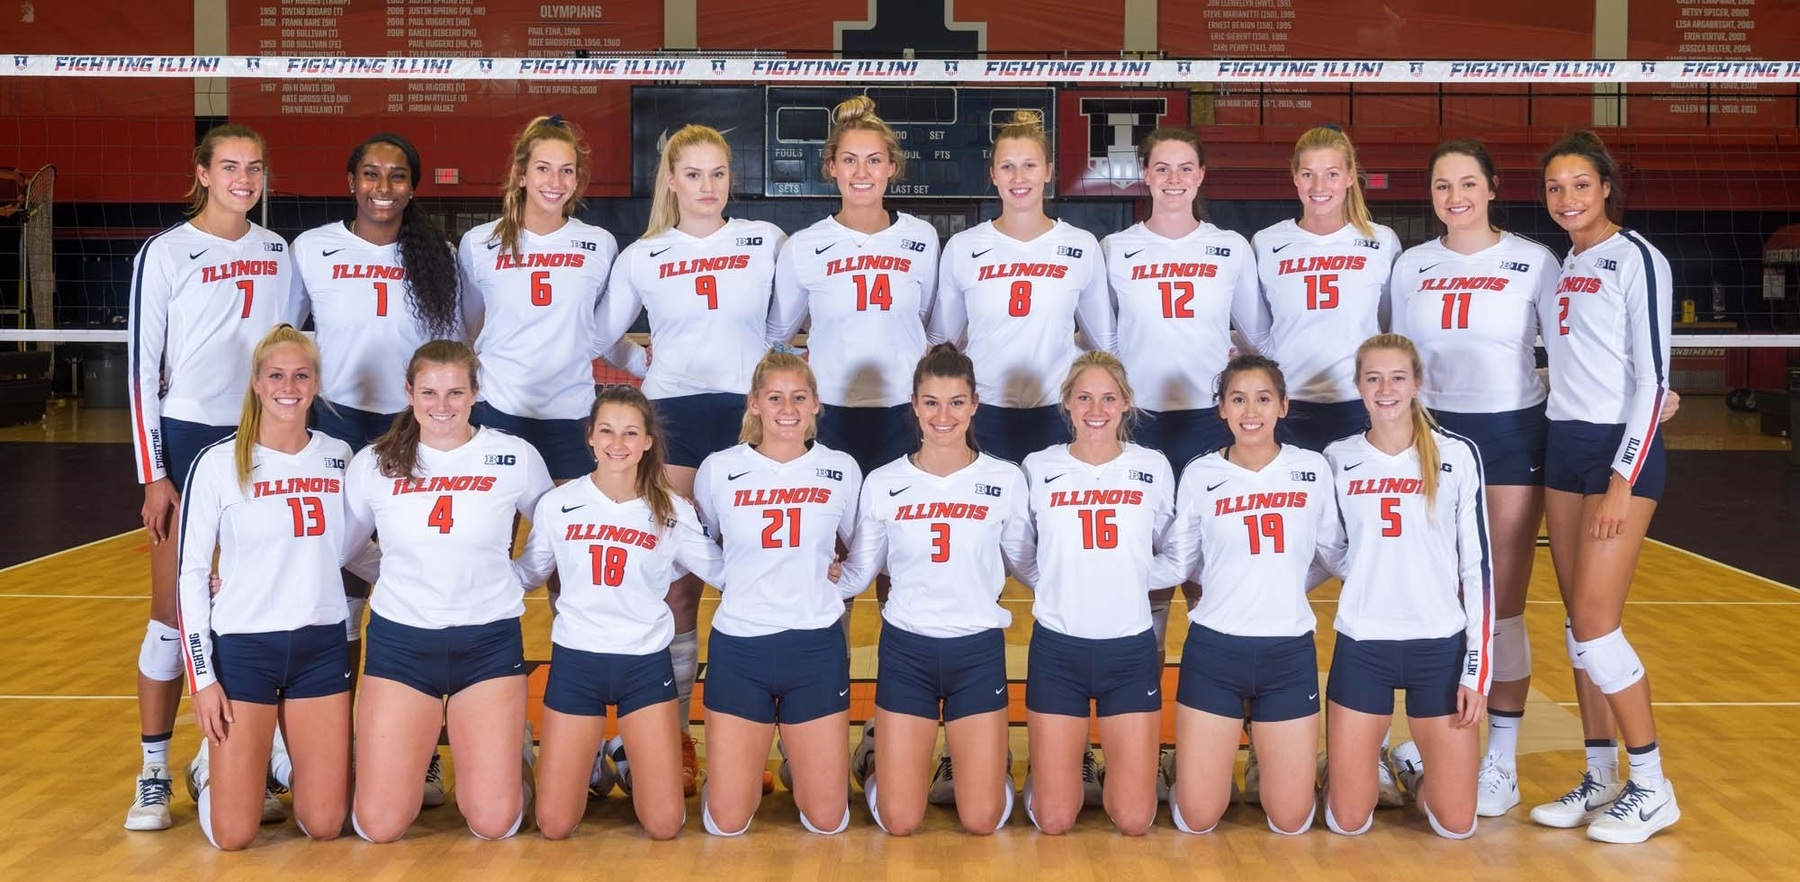 2019 team photo of the Illini Volleyball team